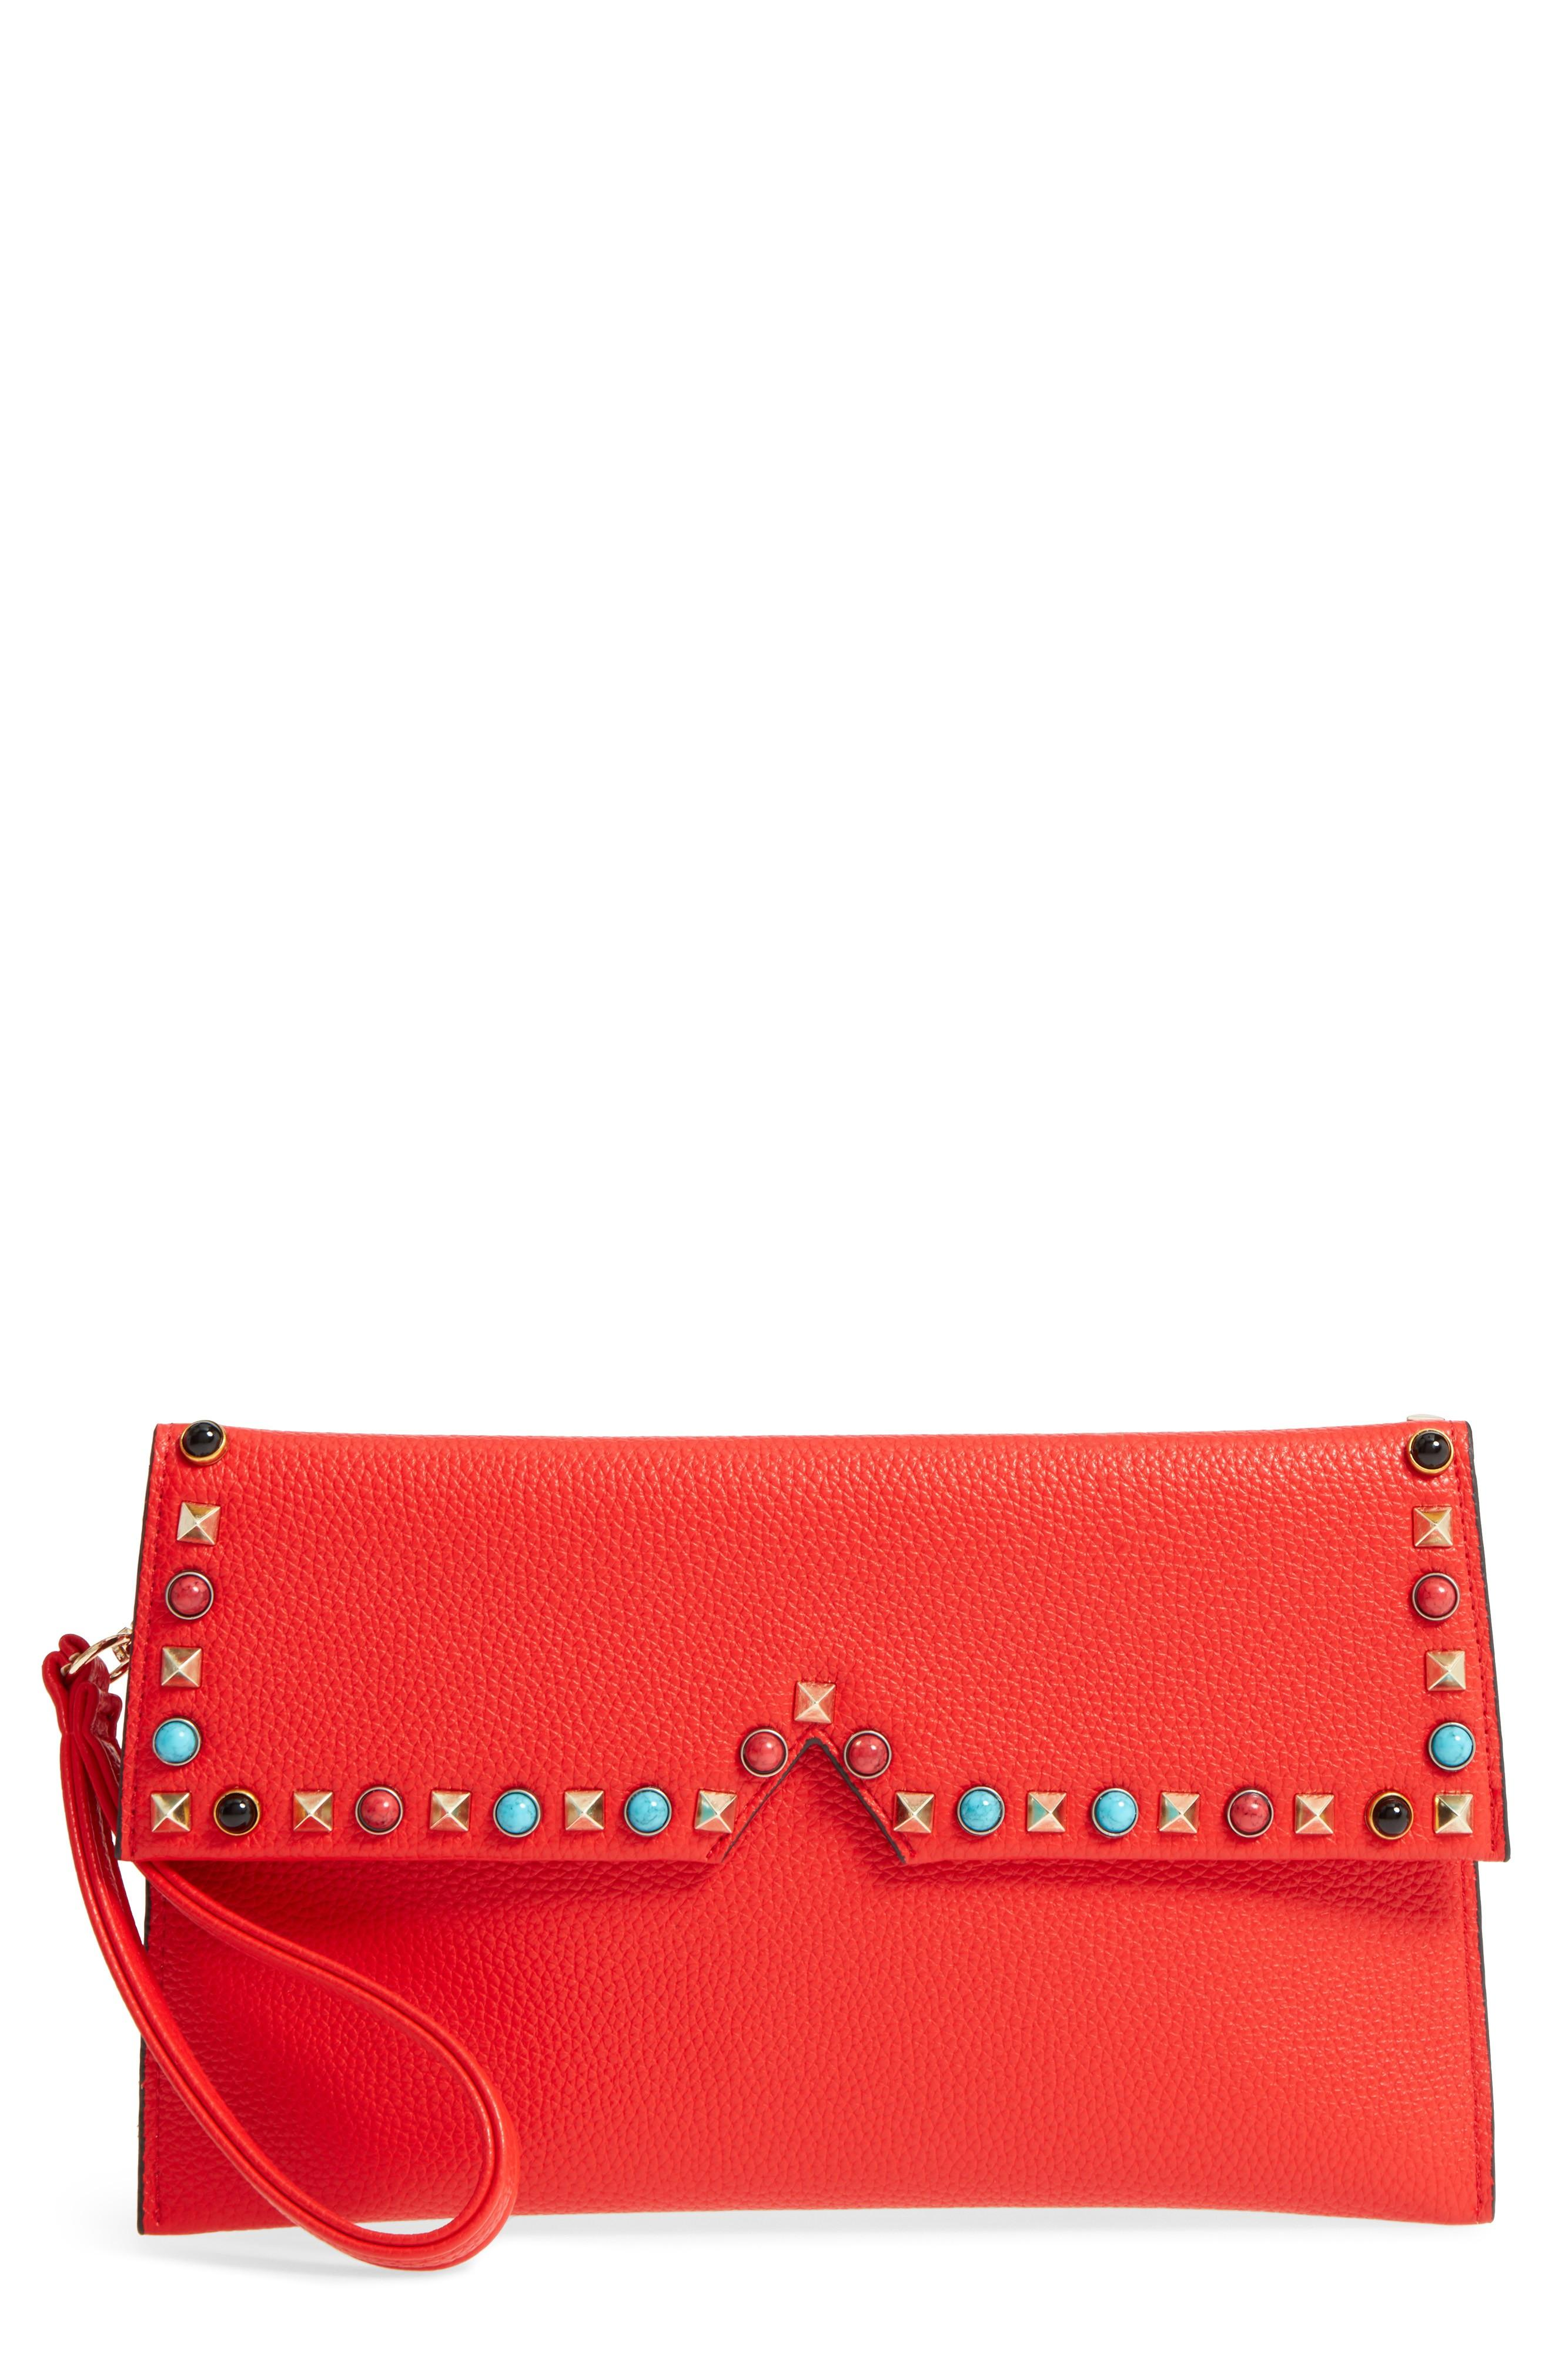 Sondra Roberts Studded Faux Leather Clutch - Red